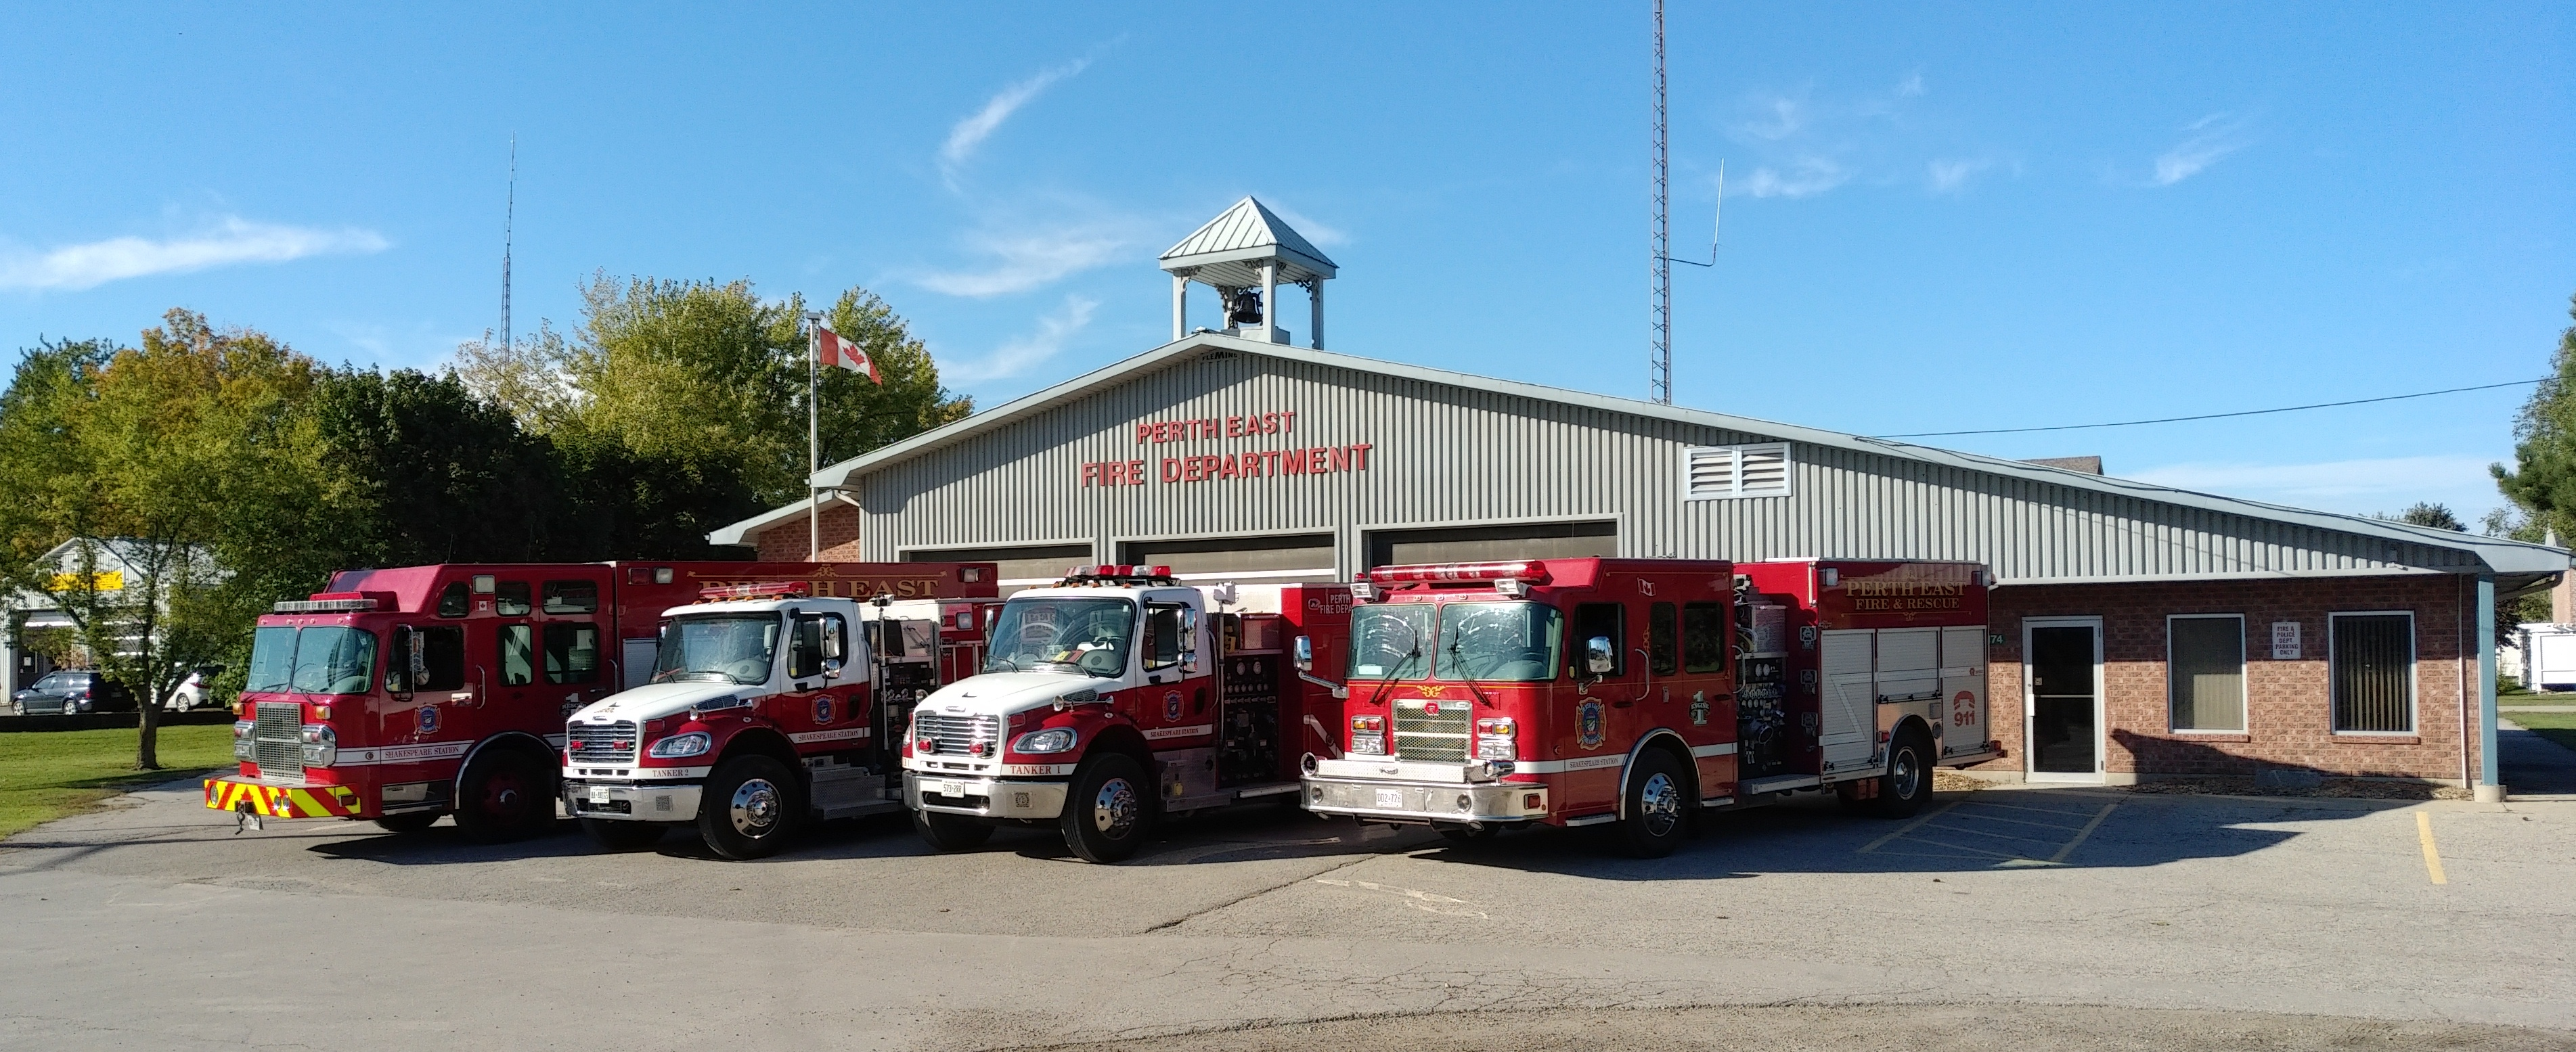 Shakespeare Fire Station with 4 fire apparatus sitting outside